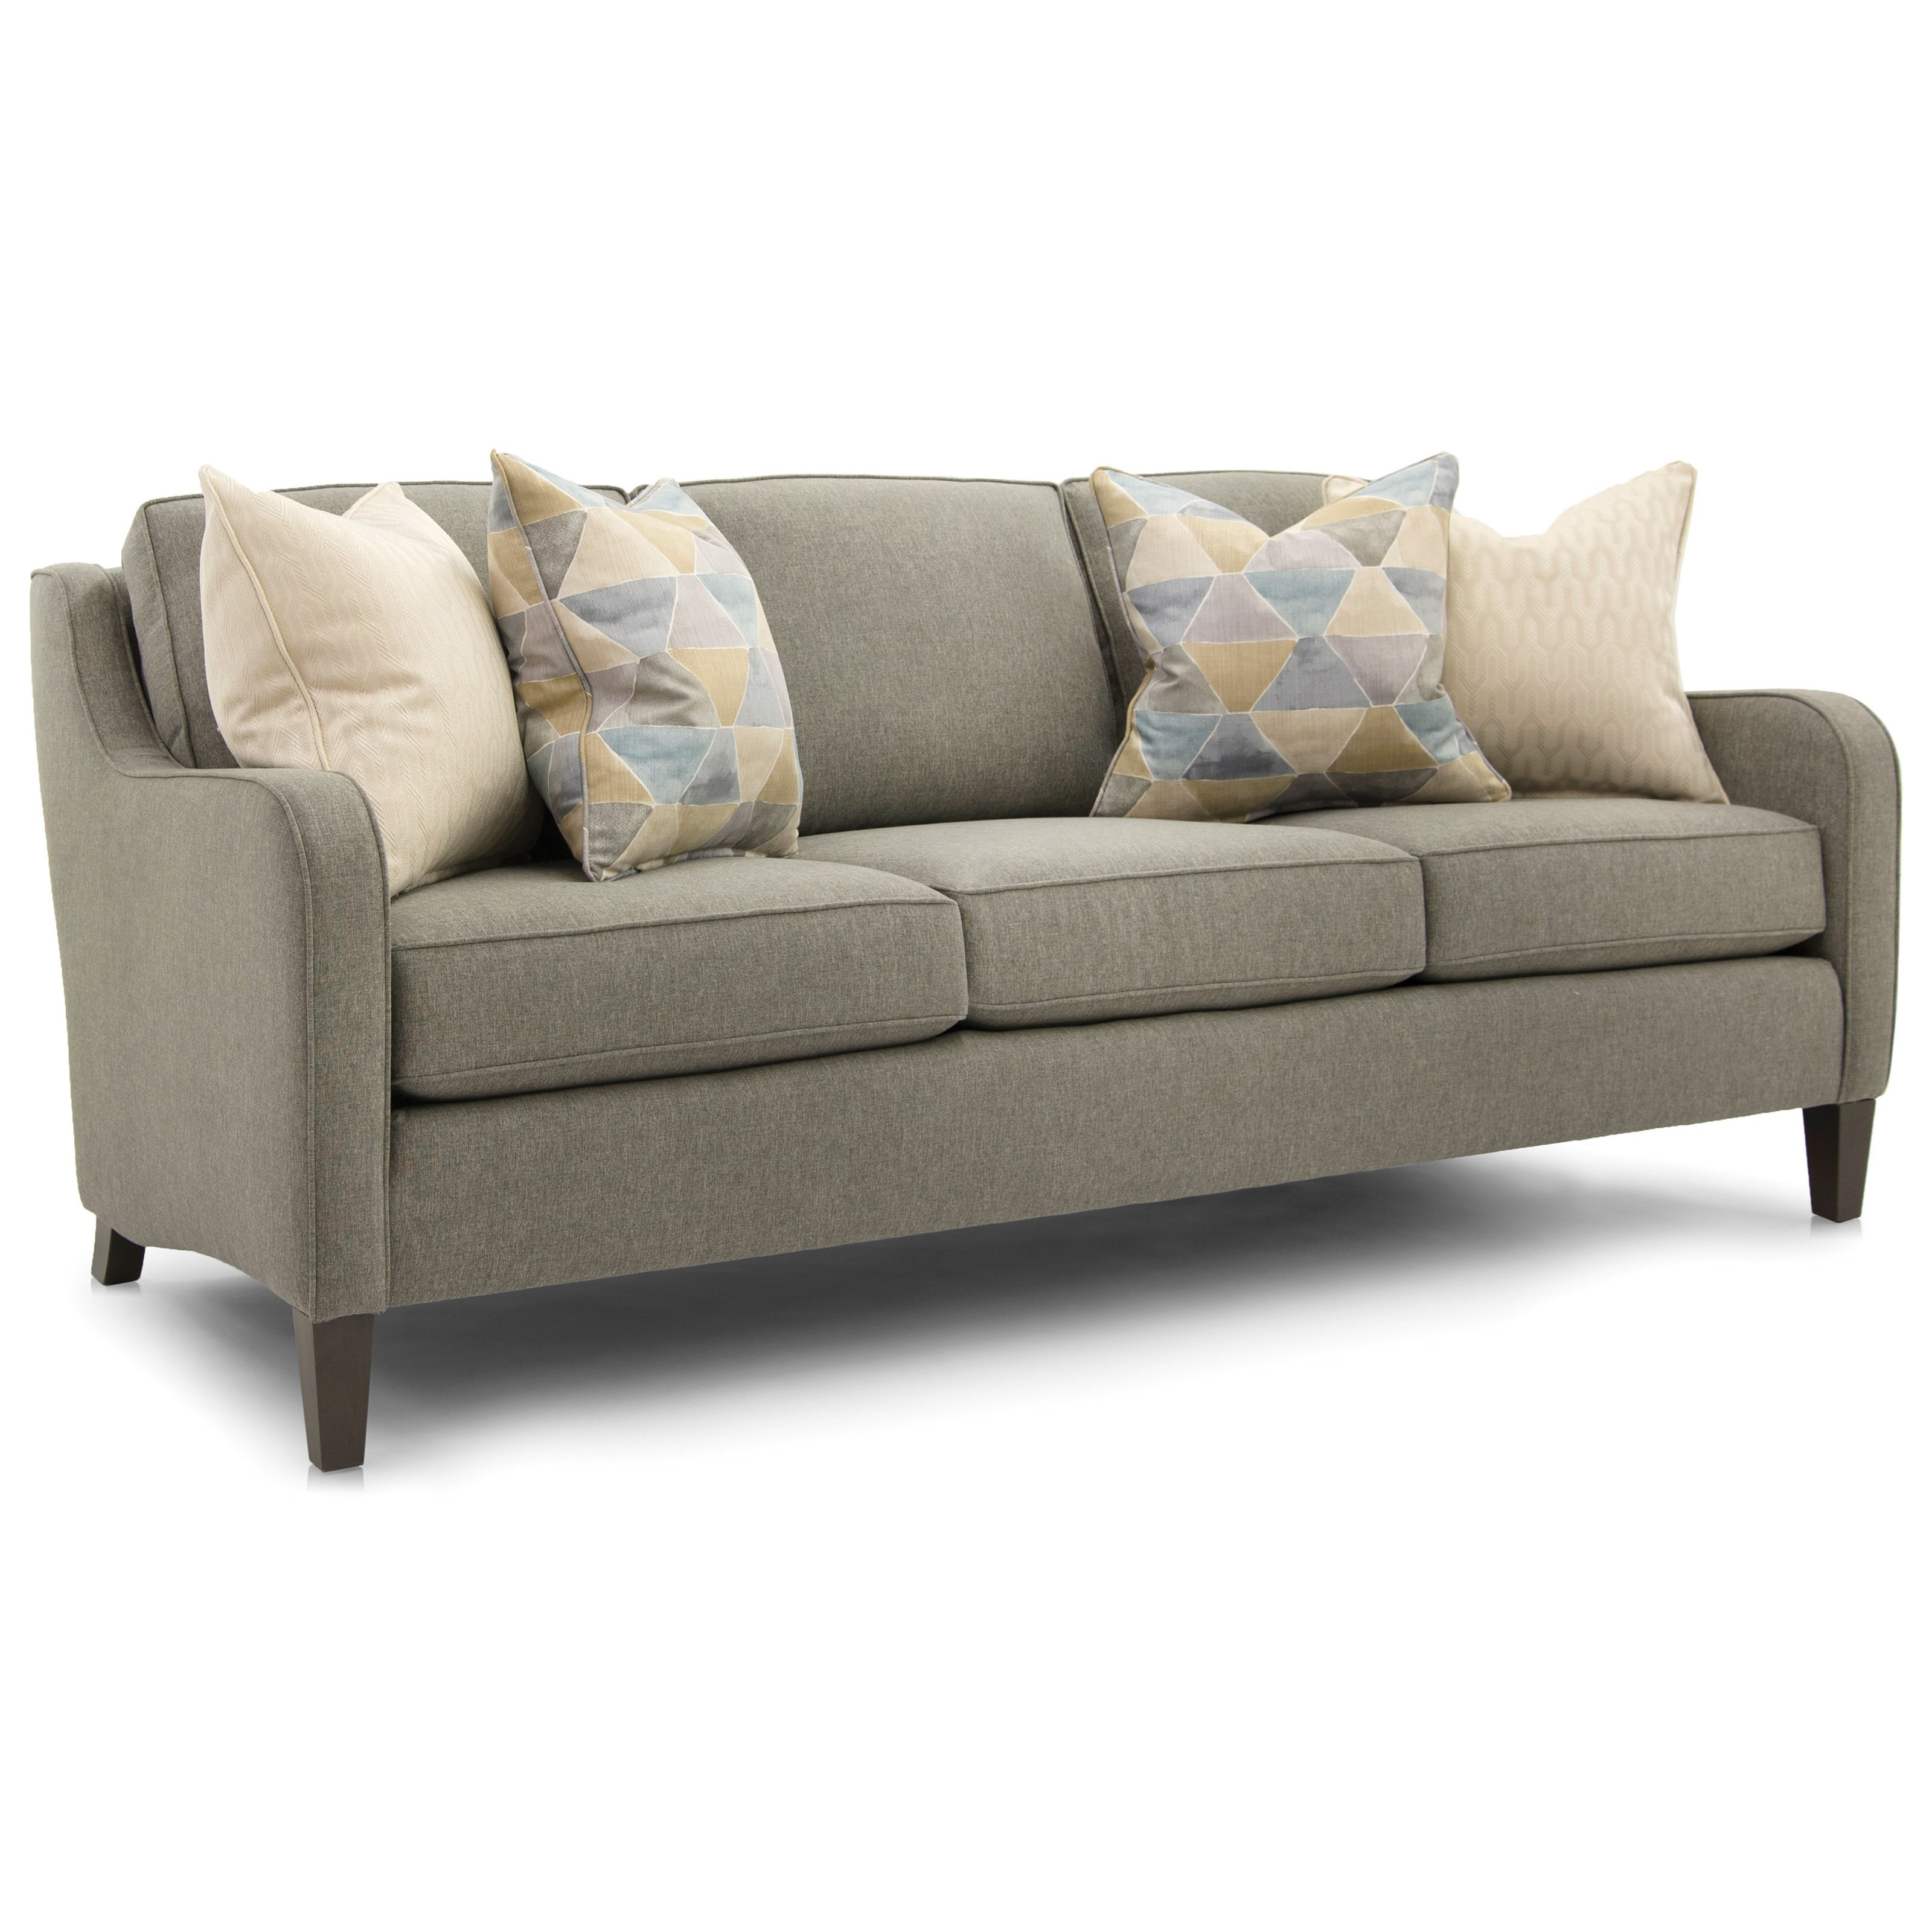 252 Full Size Sofa by Smith Brothers at Gill Brothers Furniture